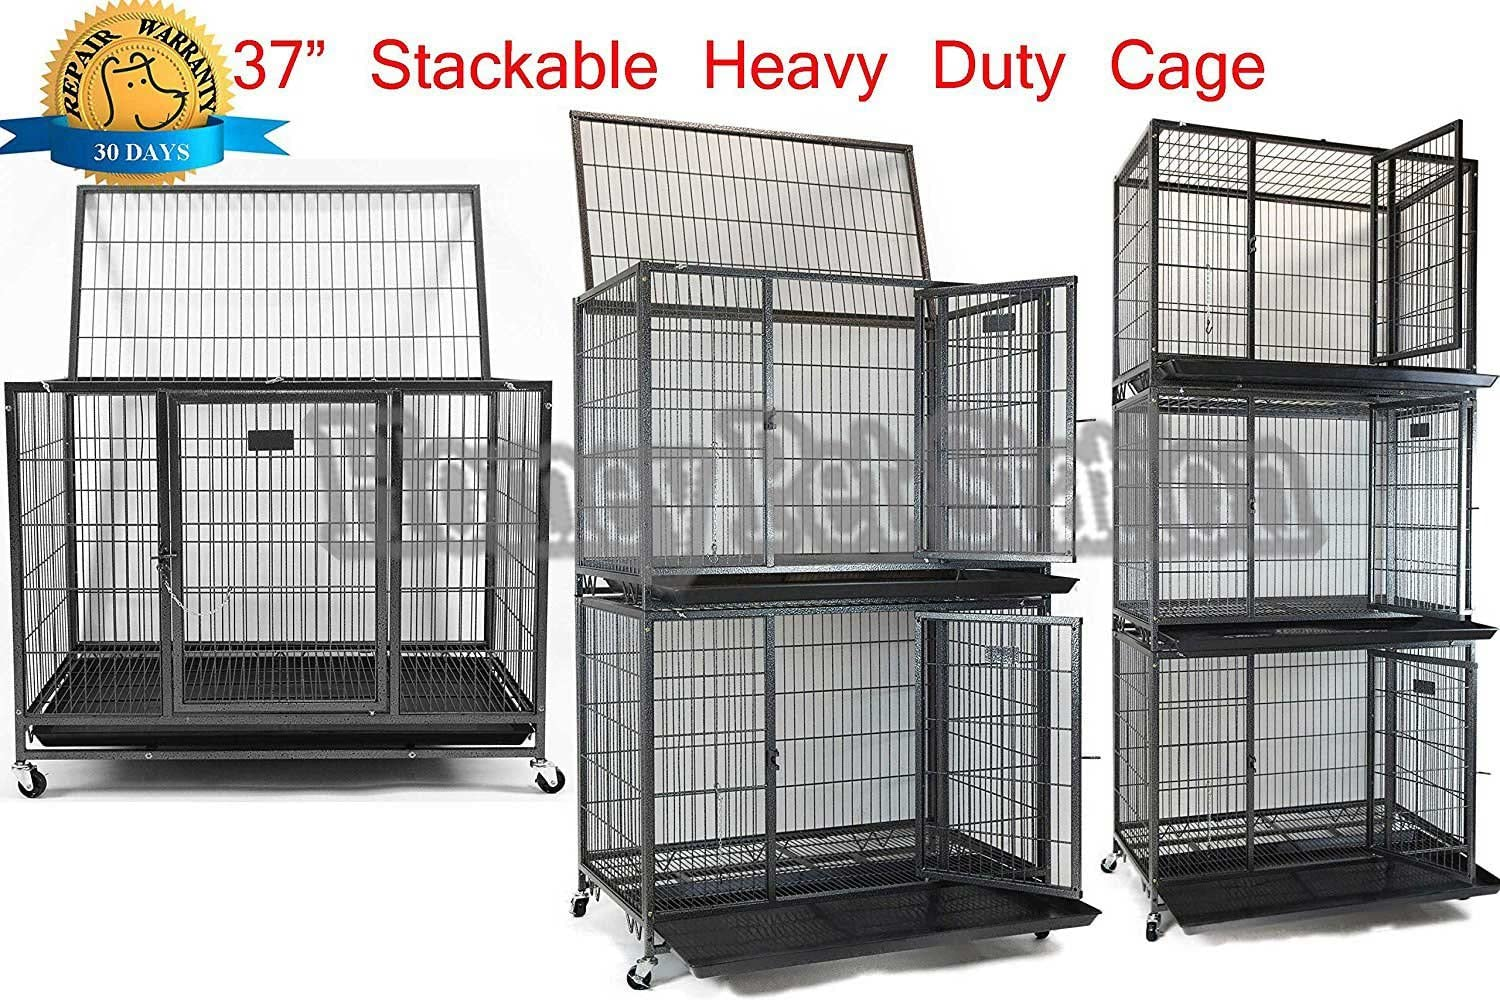 Homey Pet 37 Open Top Heavy Duty Dog Pet Cage Kennel w Tray, Floor Grid, and Casters